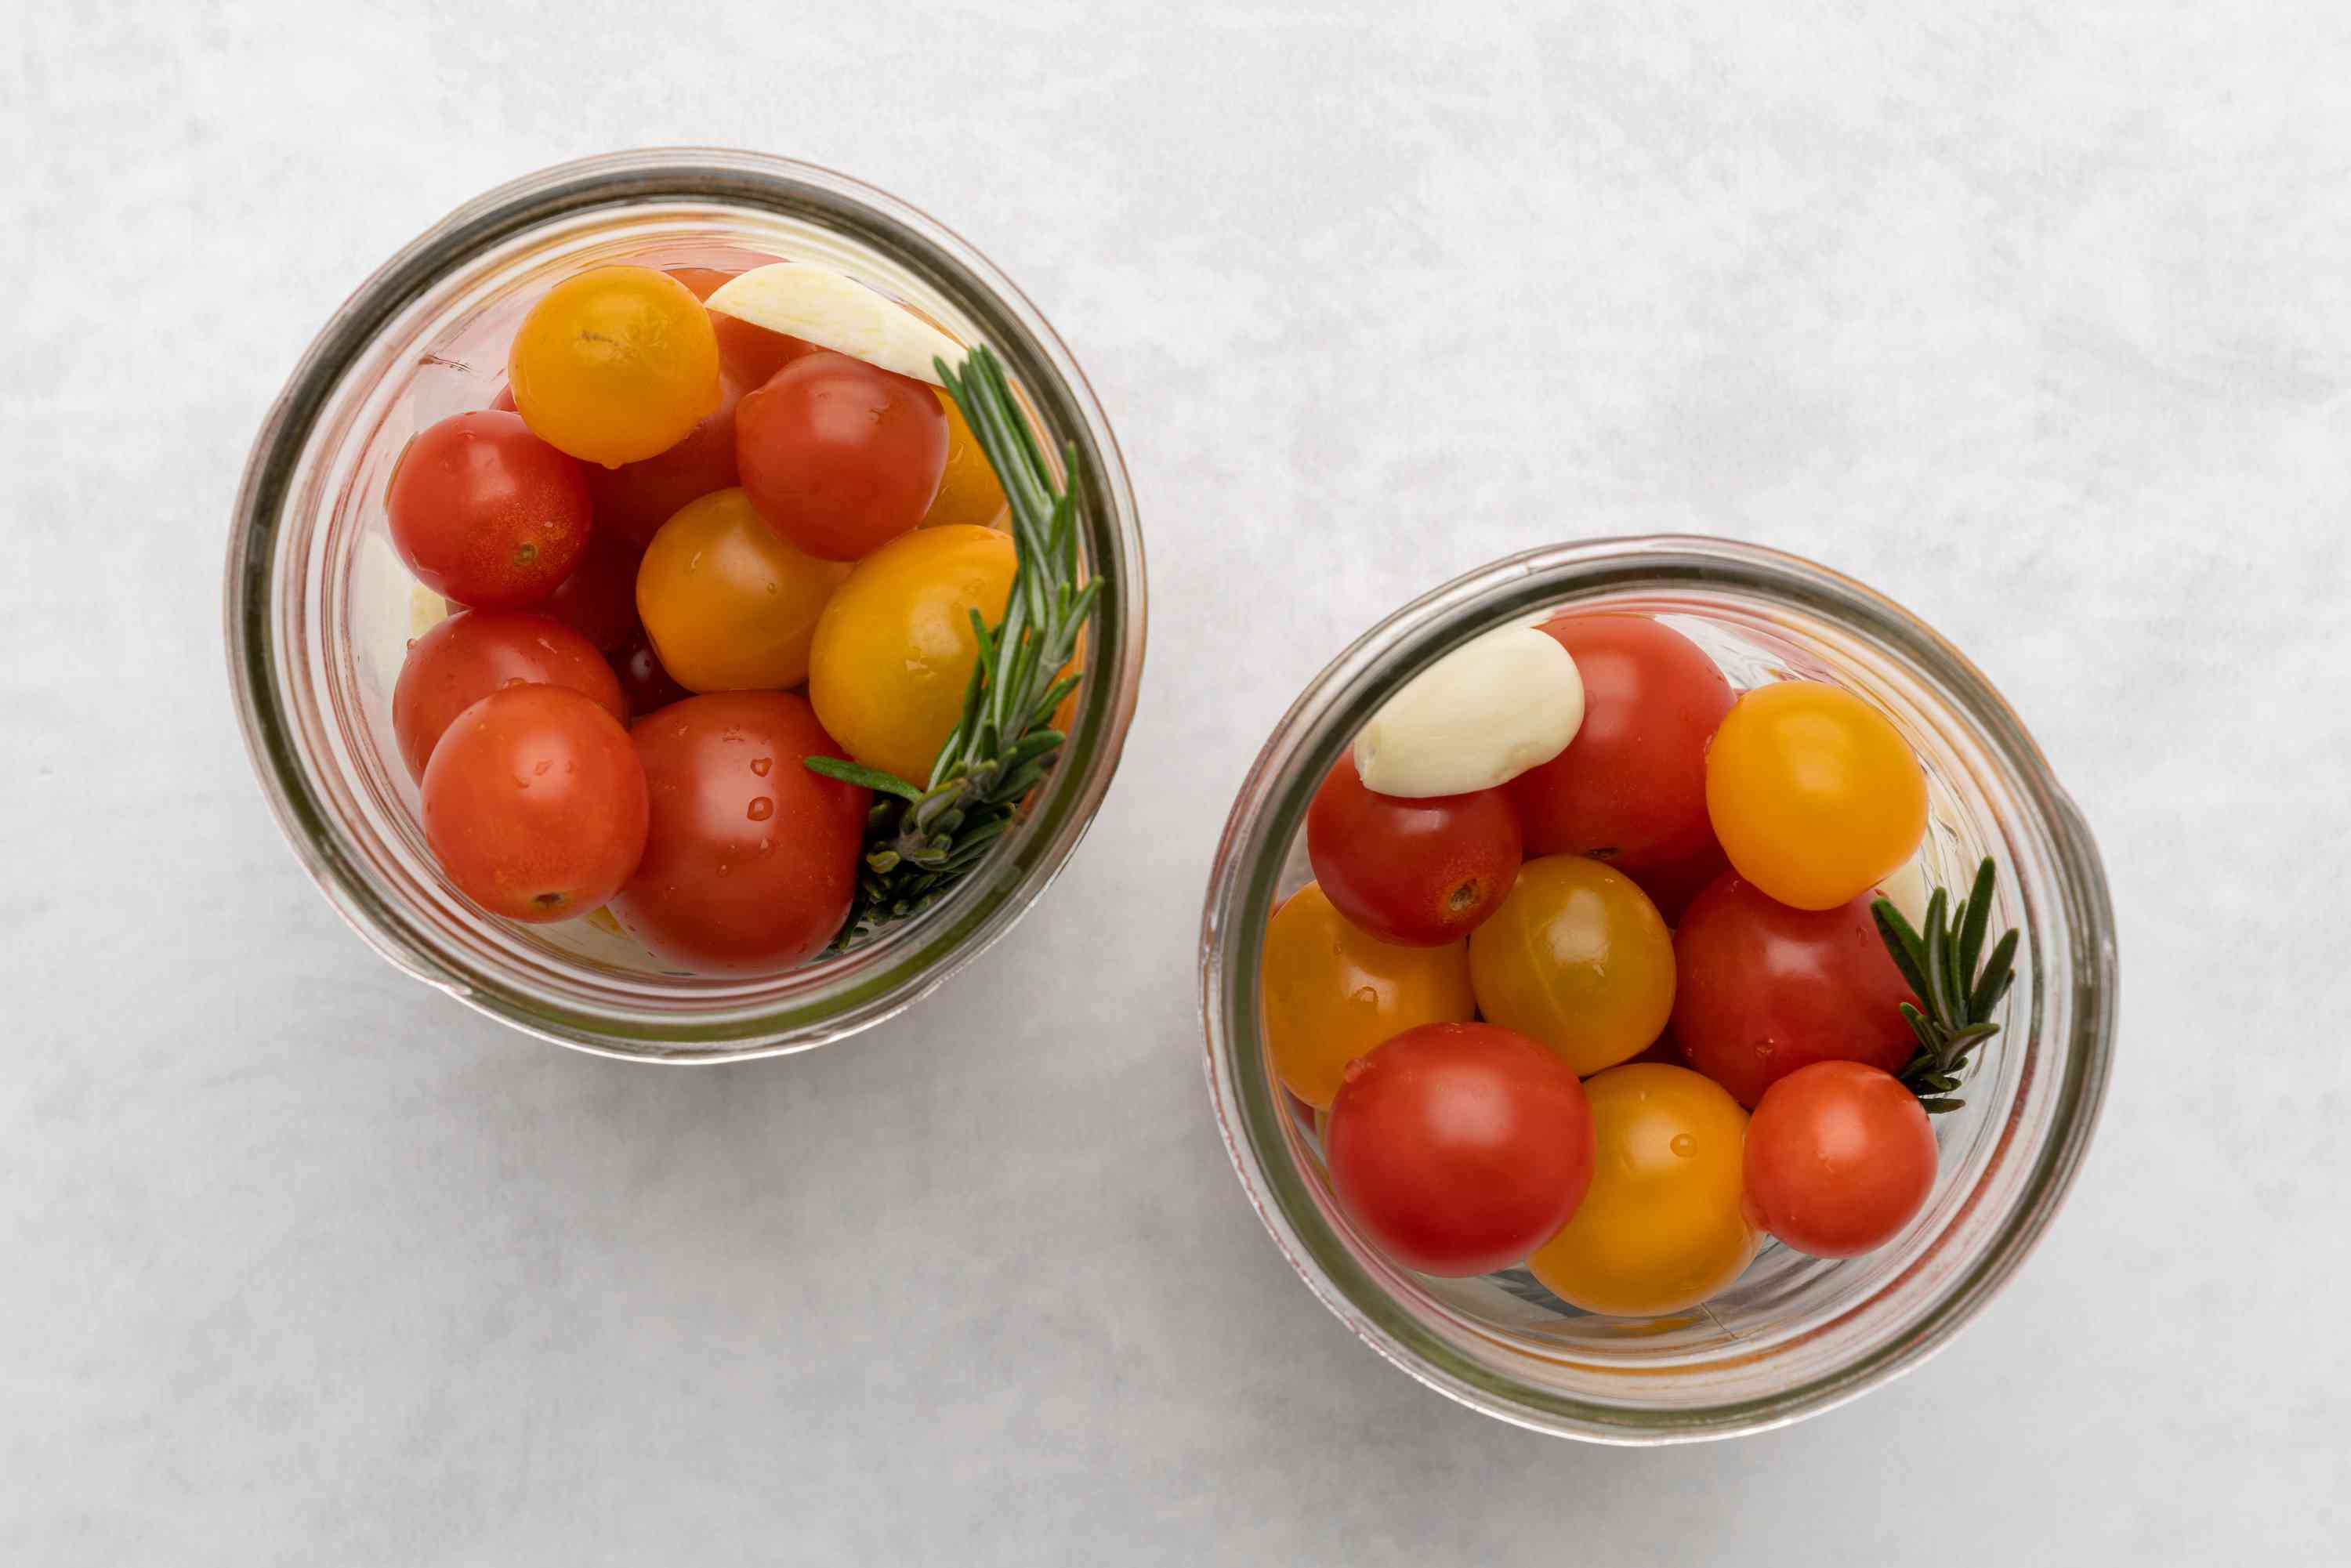 Cherry Tomatoes, garlic, and rosemary in two jars